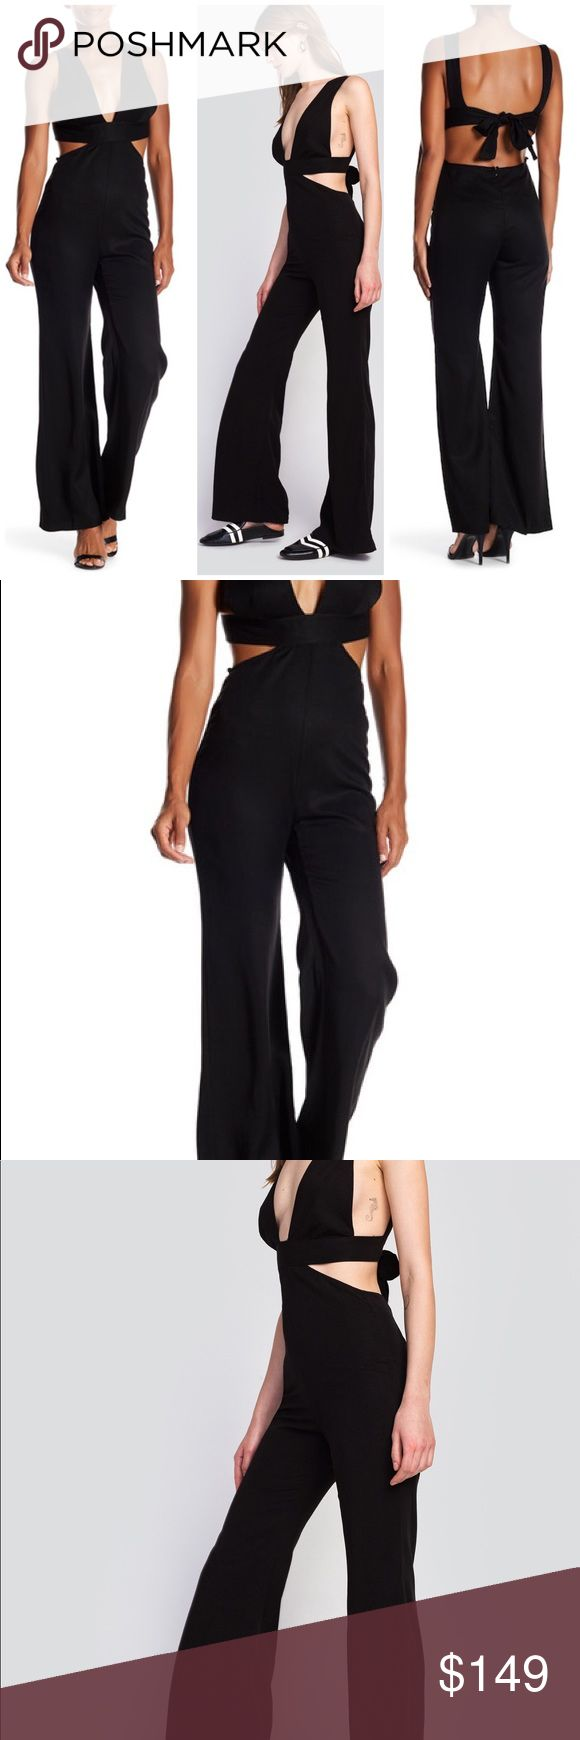 🆕 Wildfox Salty Blonde Jumpsuit A strategically cutout jumpsuit shows off a little bit of skin for a sultry, seductive look.  - V-neck  - Sleeveless  - Back hidden zip, self-tie, and hook-and-eye clasp closure  - Solid color  - Made in USA  Fiber Content 100% Lyocell  Care Dry clean only  Fit: this style fits true to size.  Brand new with tag. Retail price $198.  Smoke free and pet free. Wildfox Pants Jumpsuits & Rompers